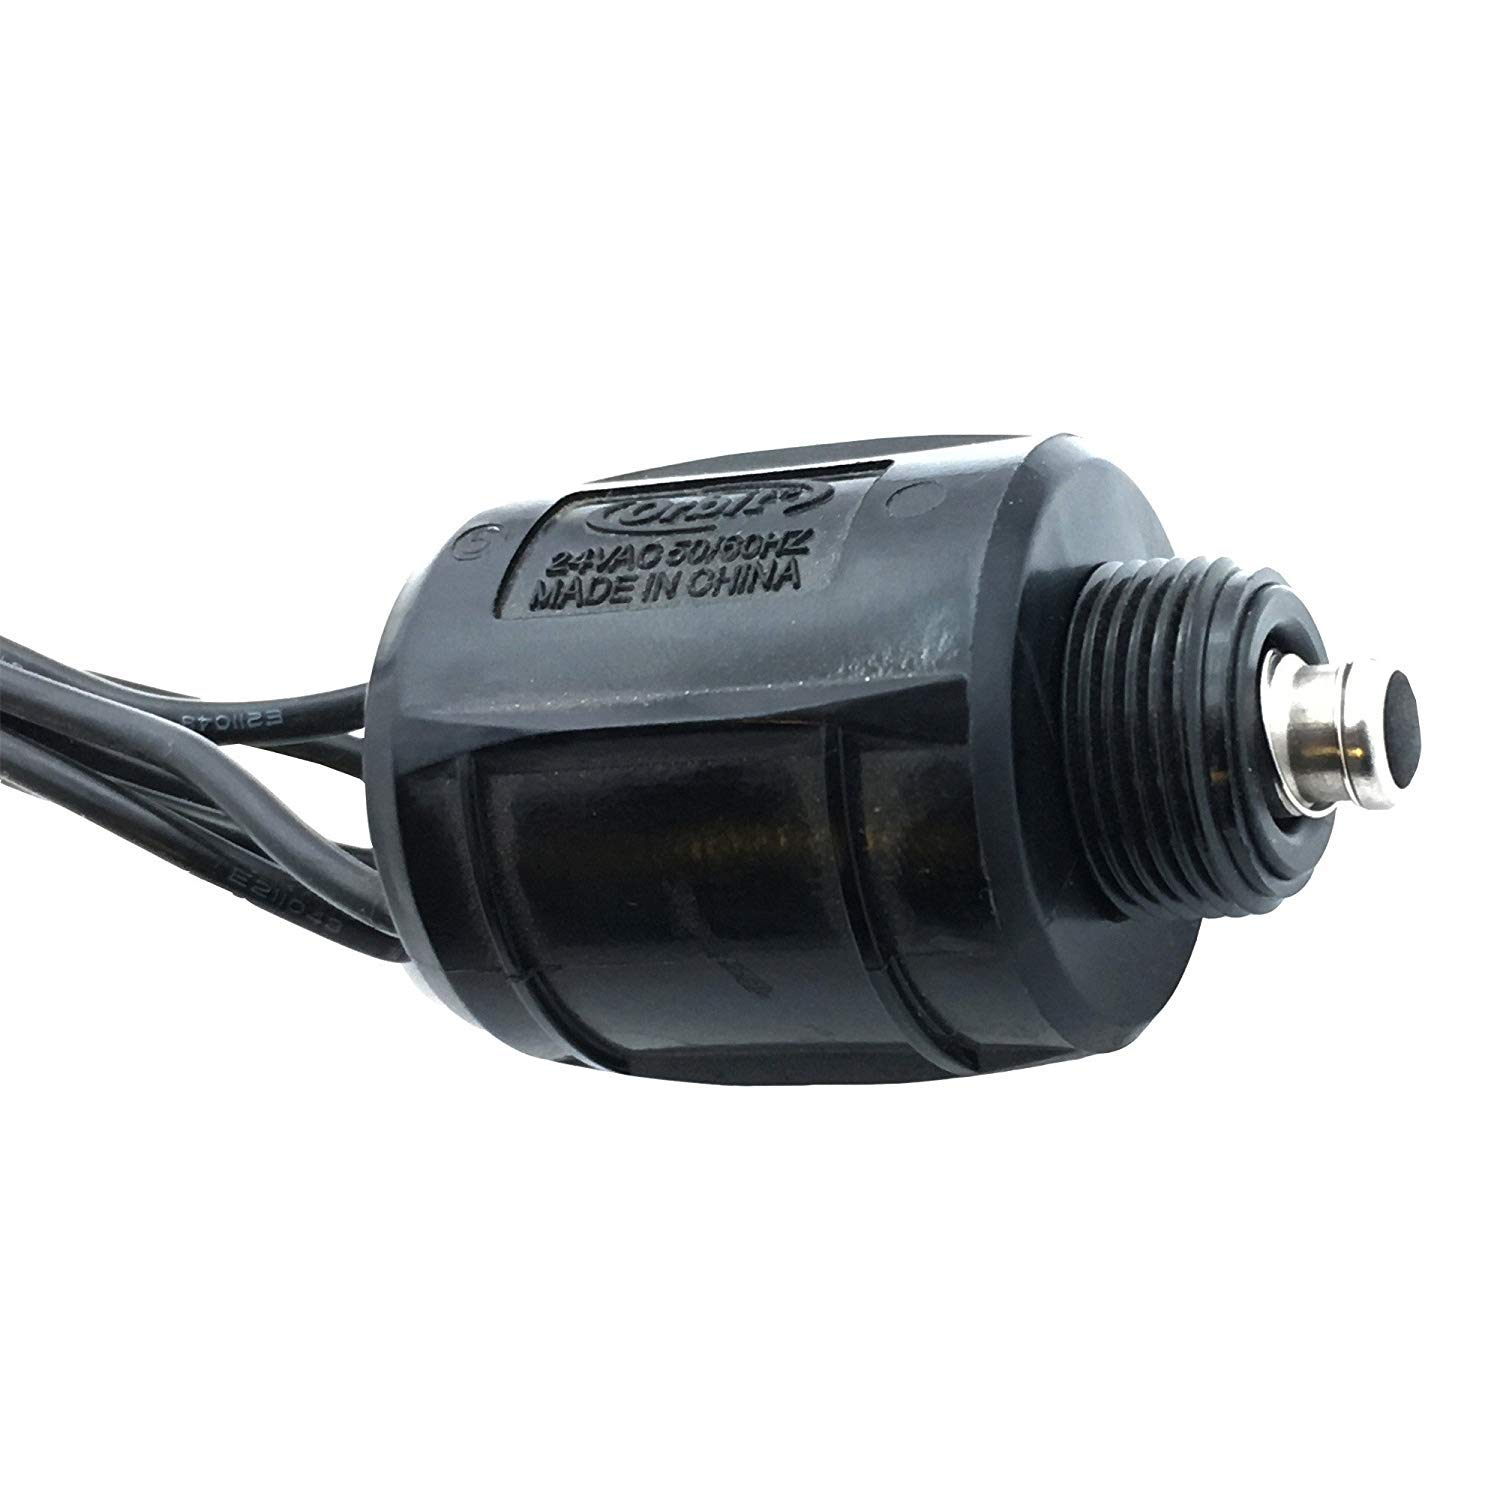 Best Rated In Automatic Underground Sprinkler Systems Helpful How To Replace An Irrigation Valve Diaphragm 10 Pack Orbit 24 Volt Solenoid Product Image